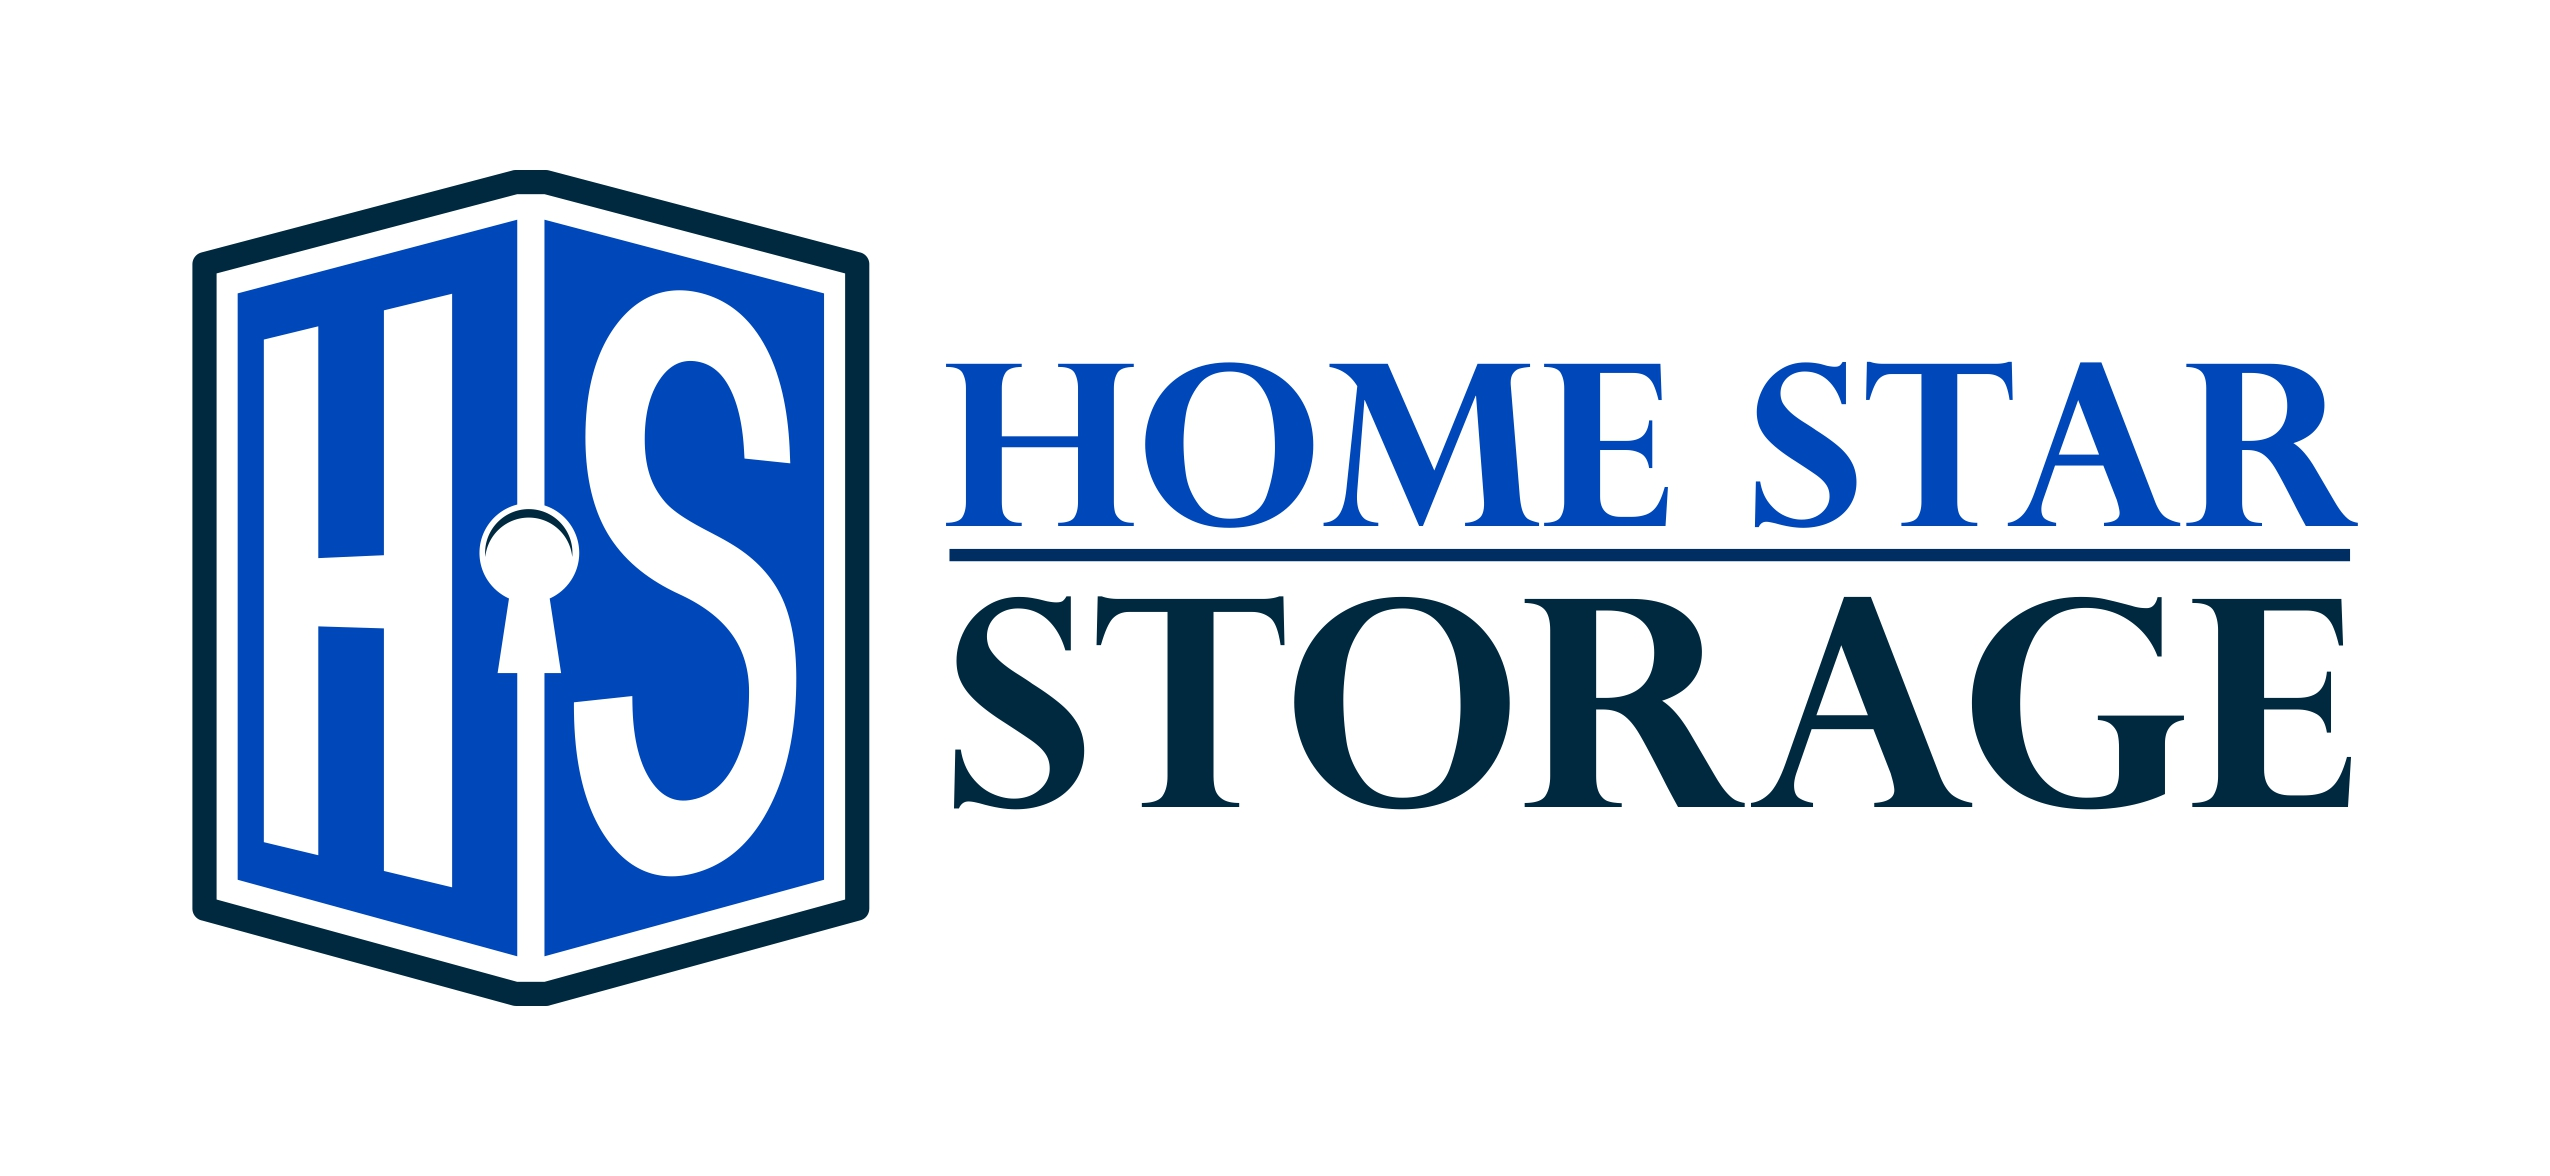 Home Star Storage LLC